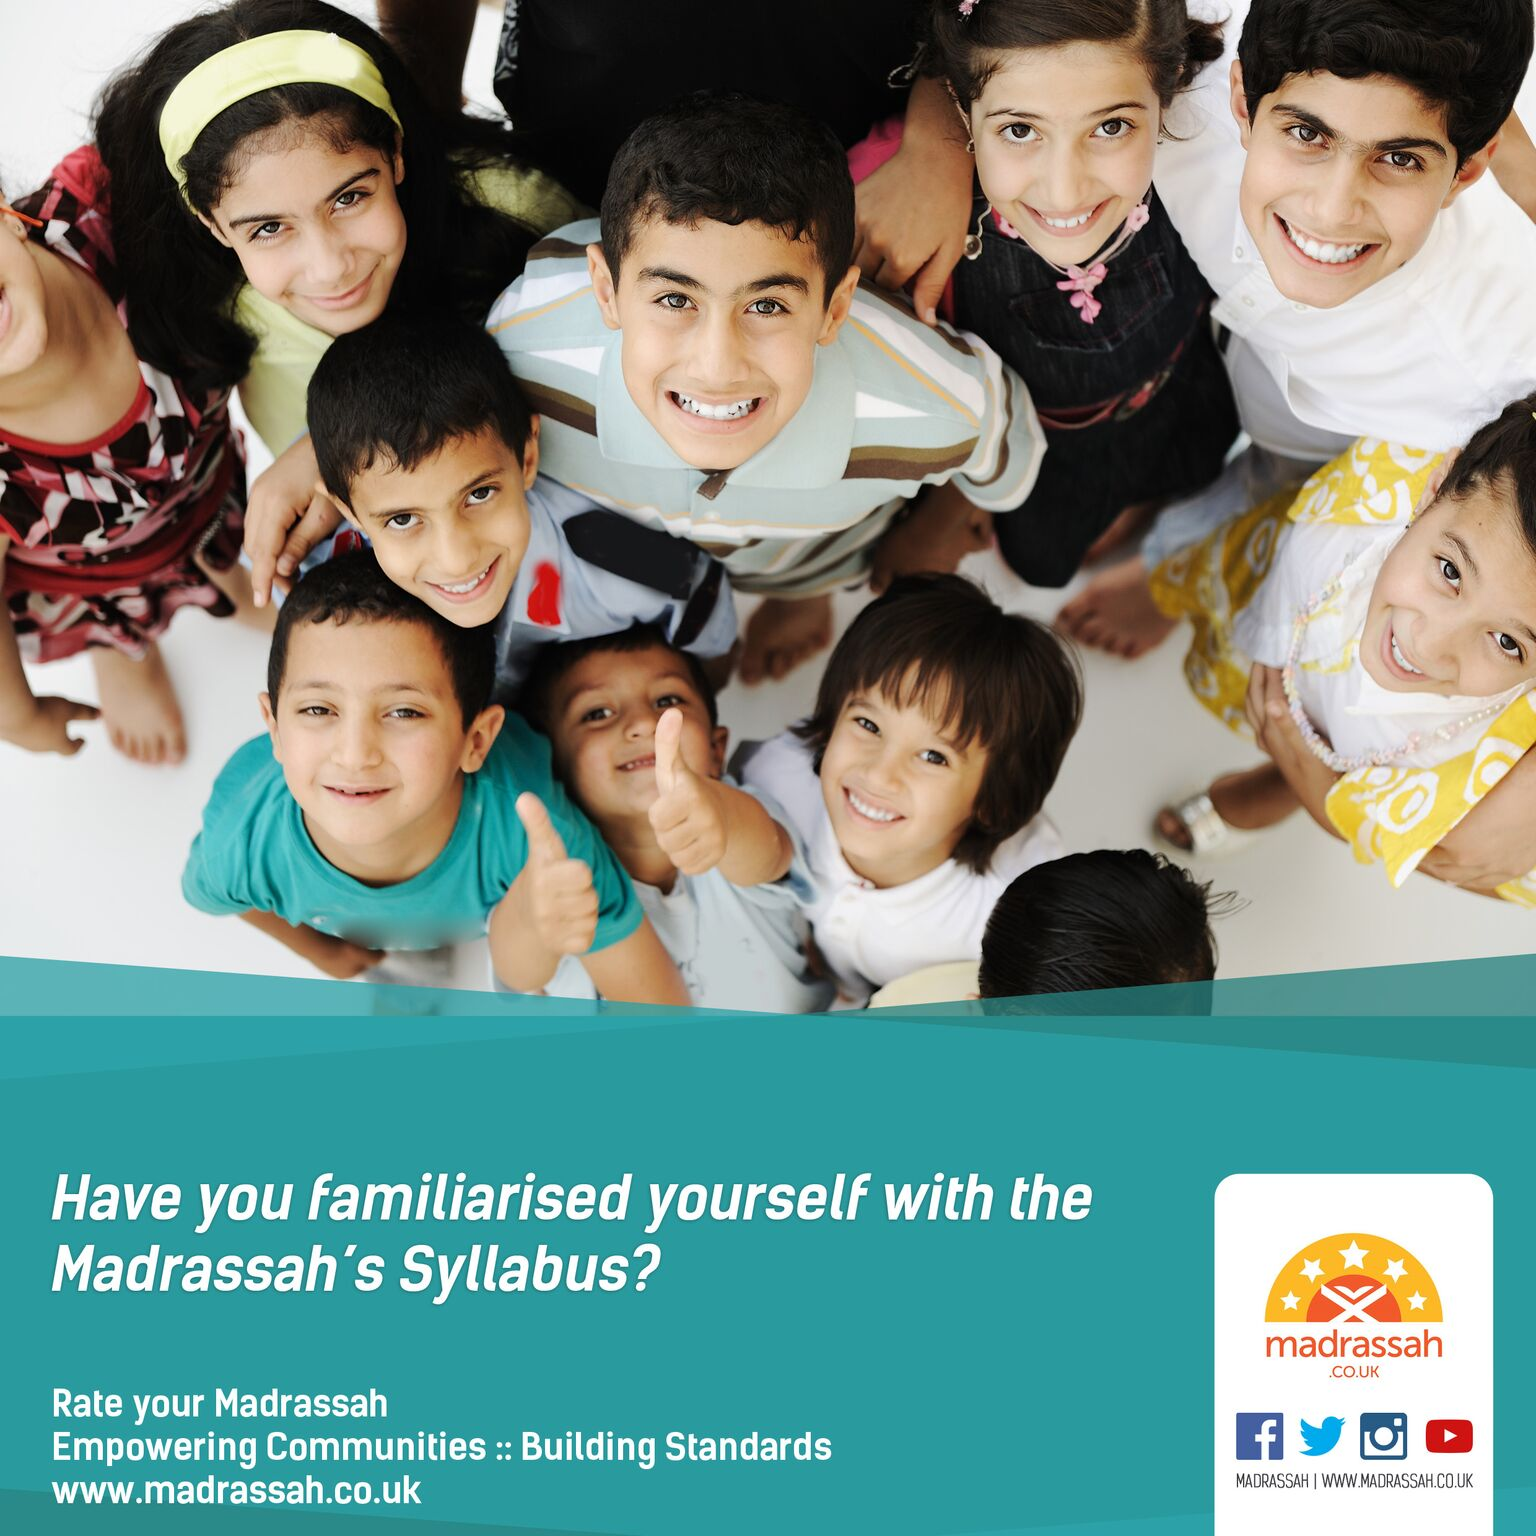 Have you familarised yourself with the Madrassah syllabus